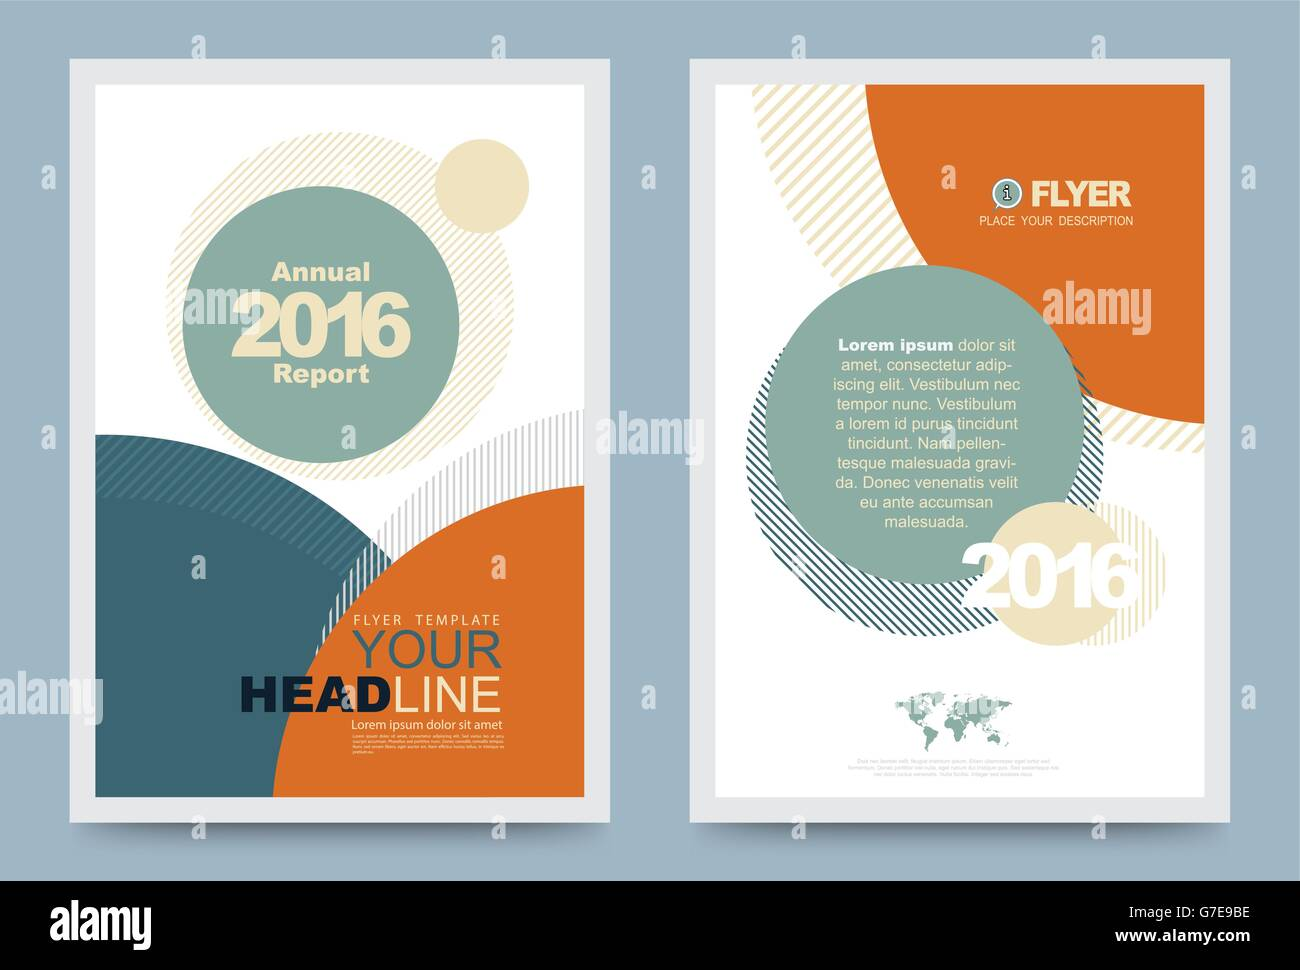 Cover Template Design For Business Annual Report Flyer